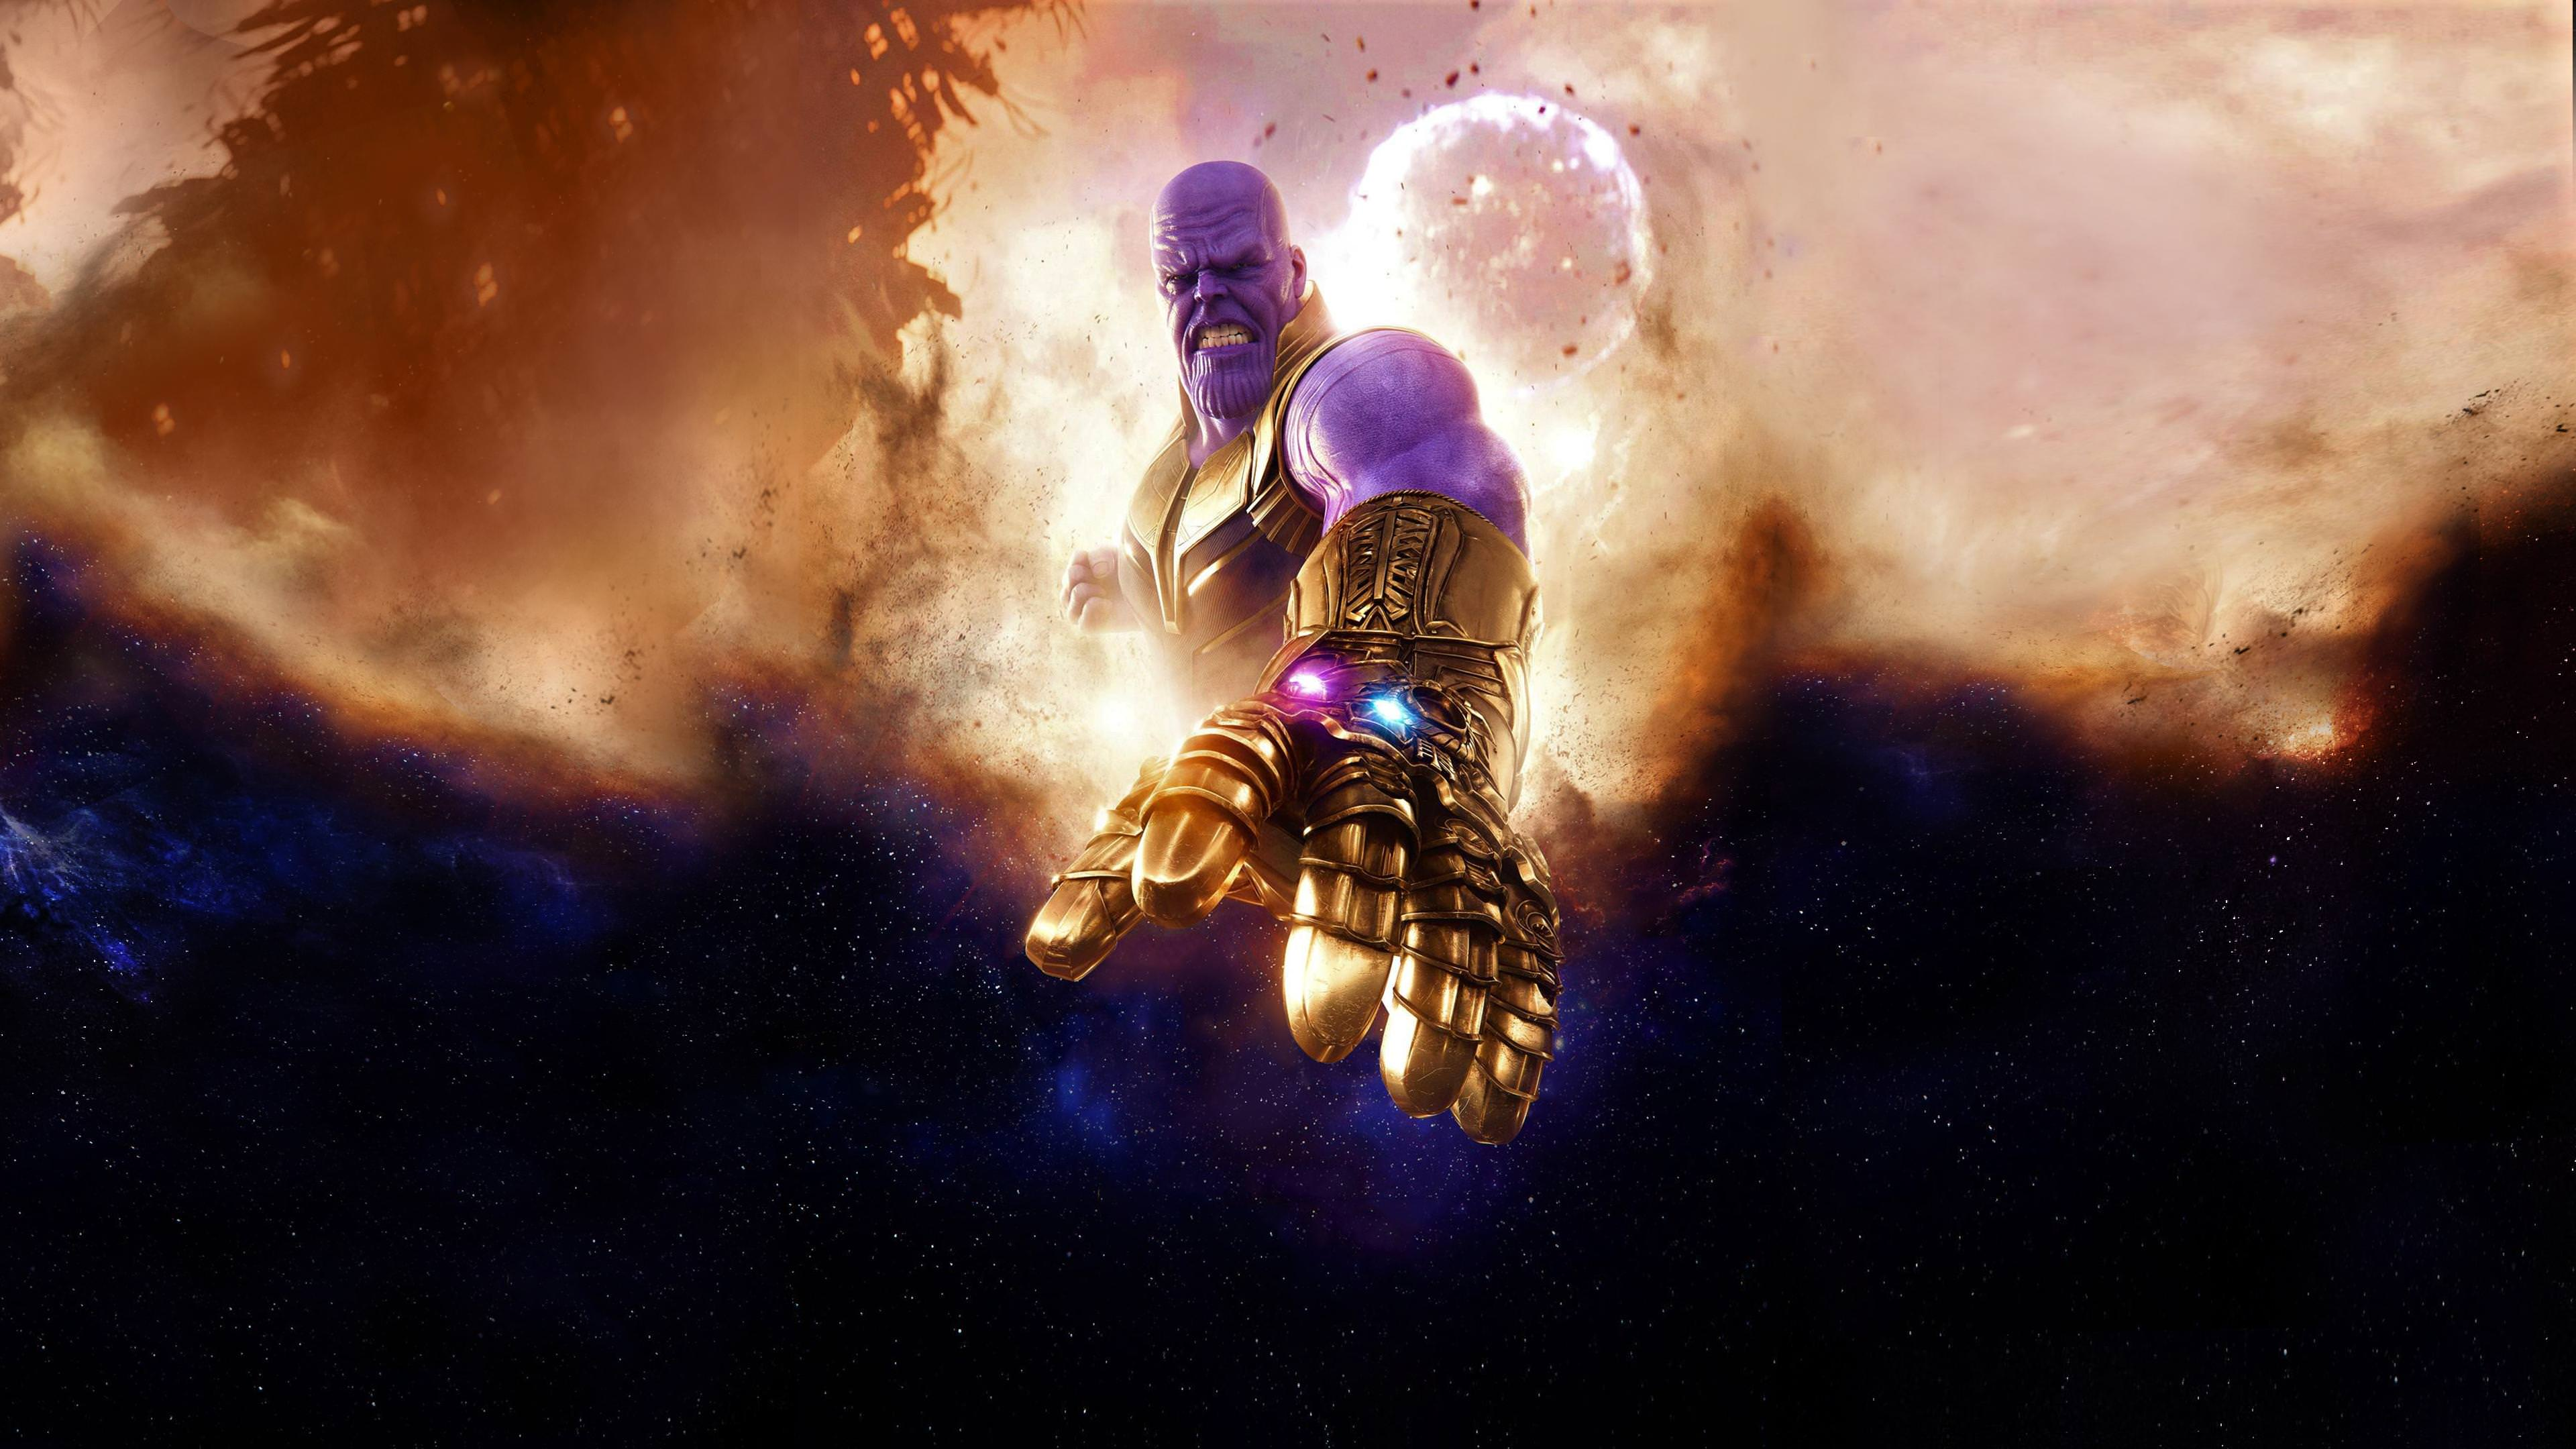 Thanos Movie Wallpapers - Top Free Thanos Movie Backgrounds